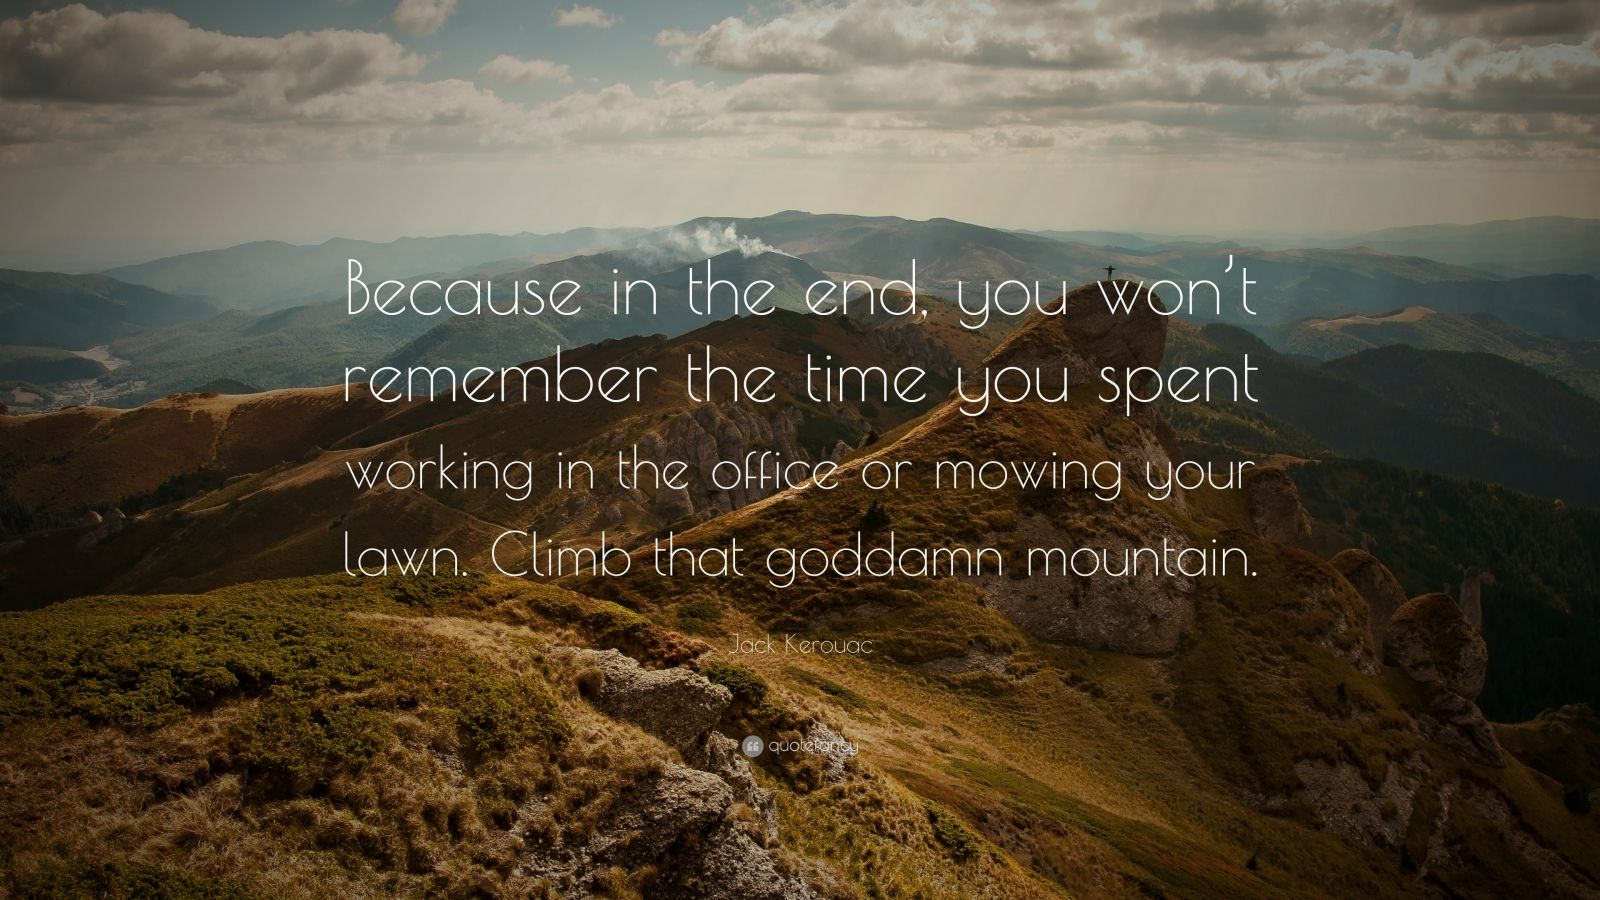 """Jack Kerouac Quote: """"Because in the end, you won't remember the time you spent working in the office or mowing your lawn. Climb that goddamn mountain."""""""